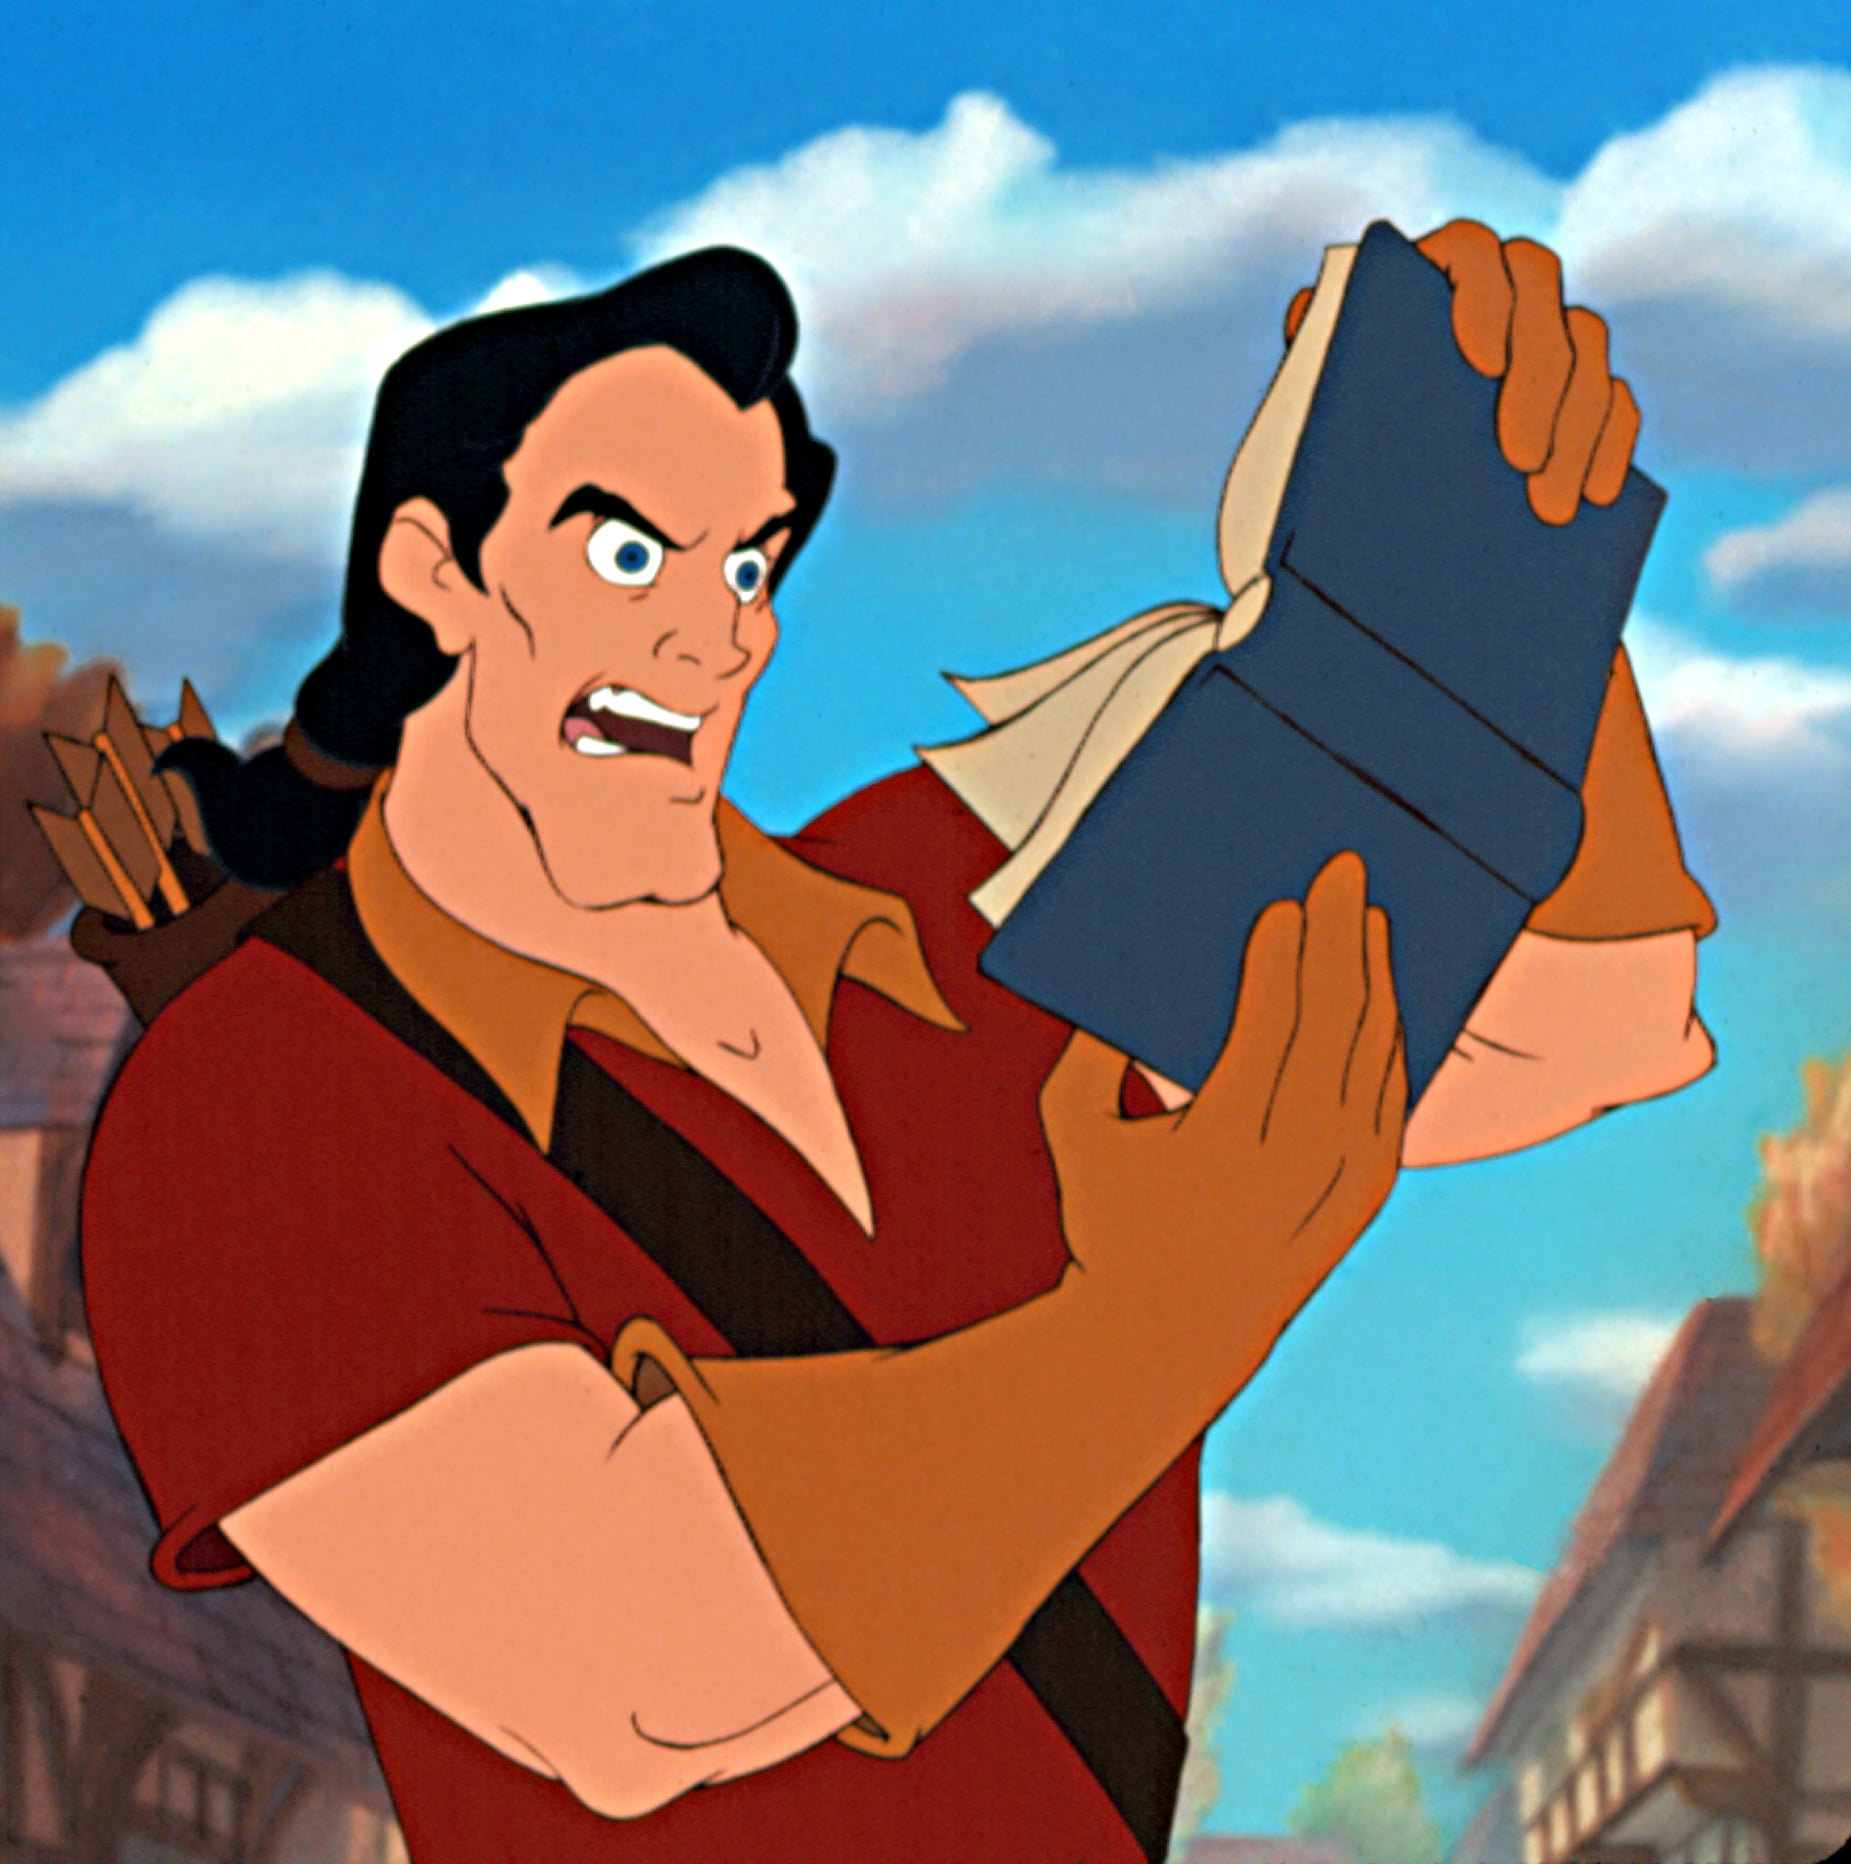 Gaston From Beauty And The Beast This Tiktok Artist Reimagined Disney Villains As Princesses And It S Outrageously Fun Popsugar Smart Living Photo 5